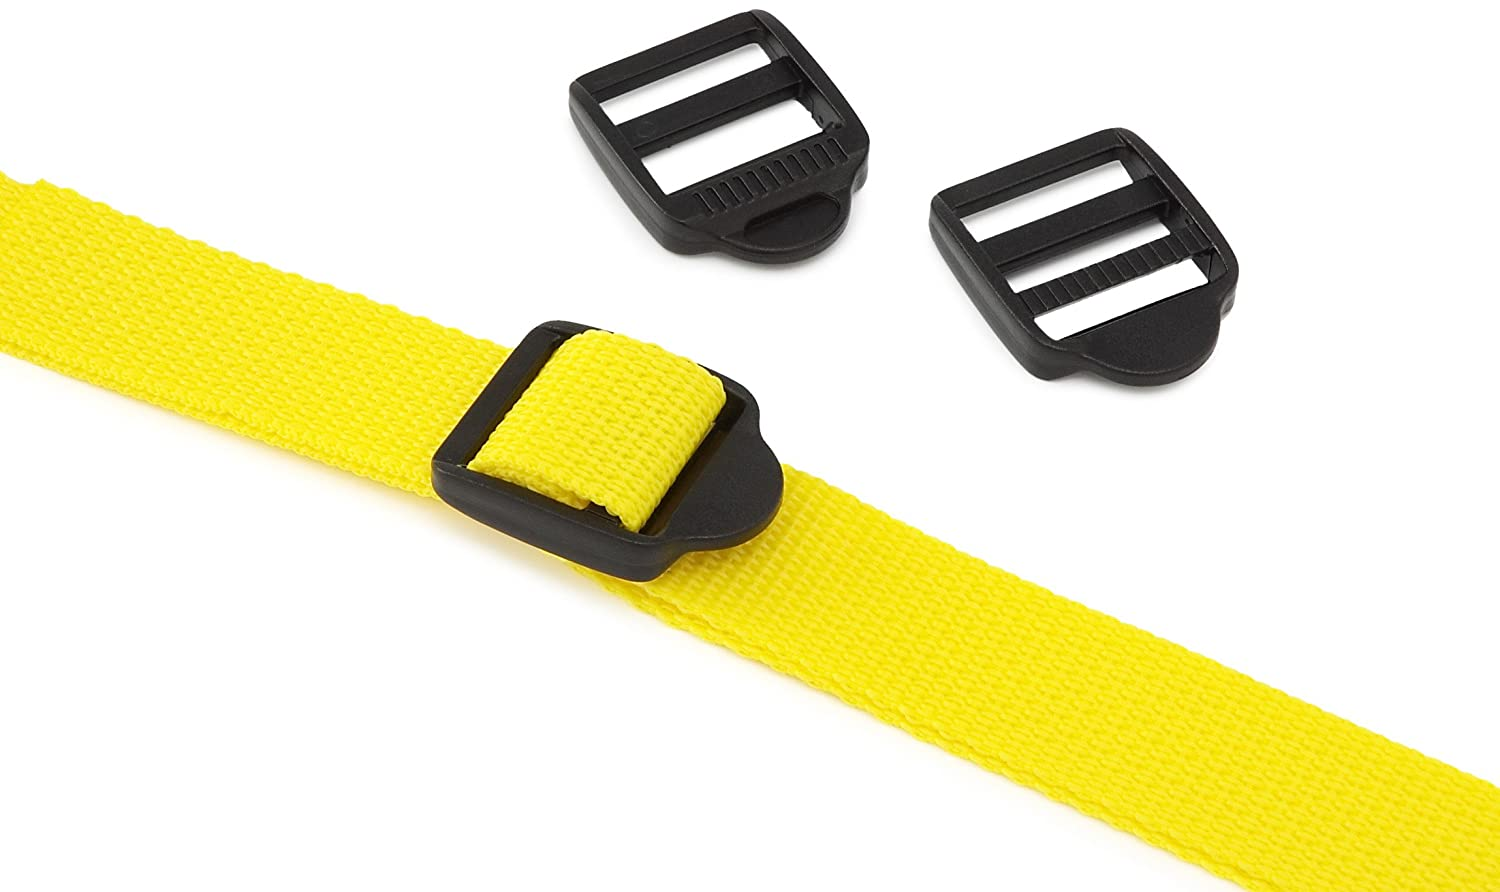 Pack of 1 12 x 1 Customizable with Slip Lock Buckle PROGRIP 502600 Light Duty Cargo Tie Down Lashing Strap with Yellow Webbing